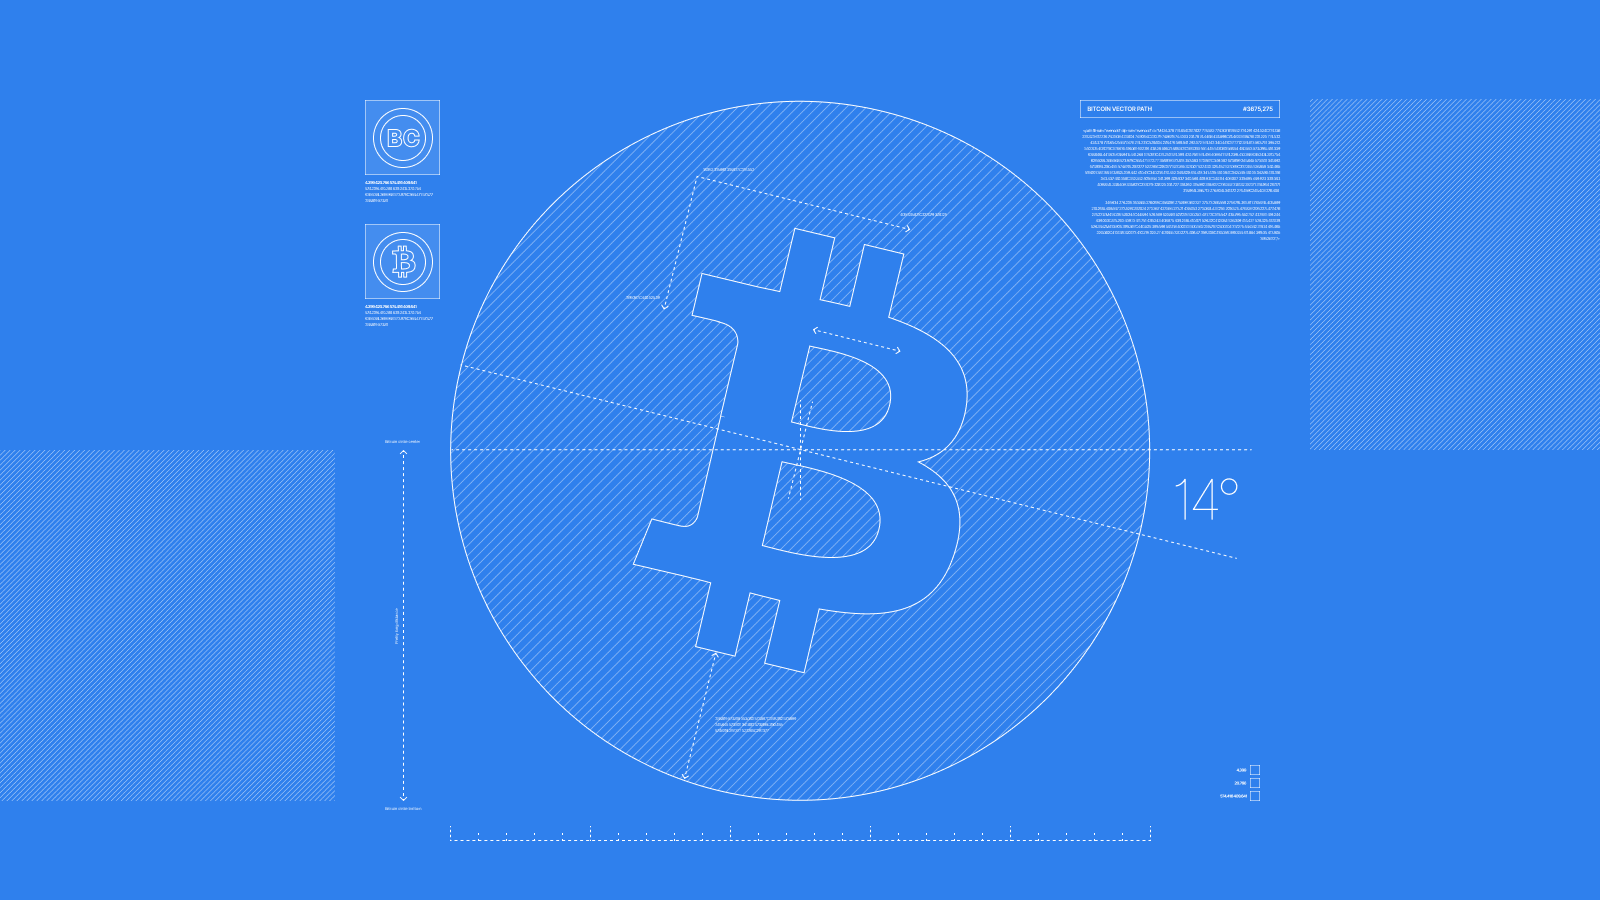 Blueprint illustration of a bitcoin symbol